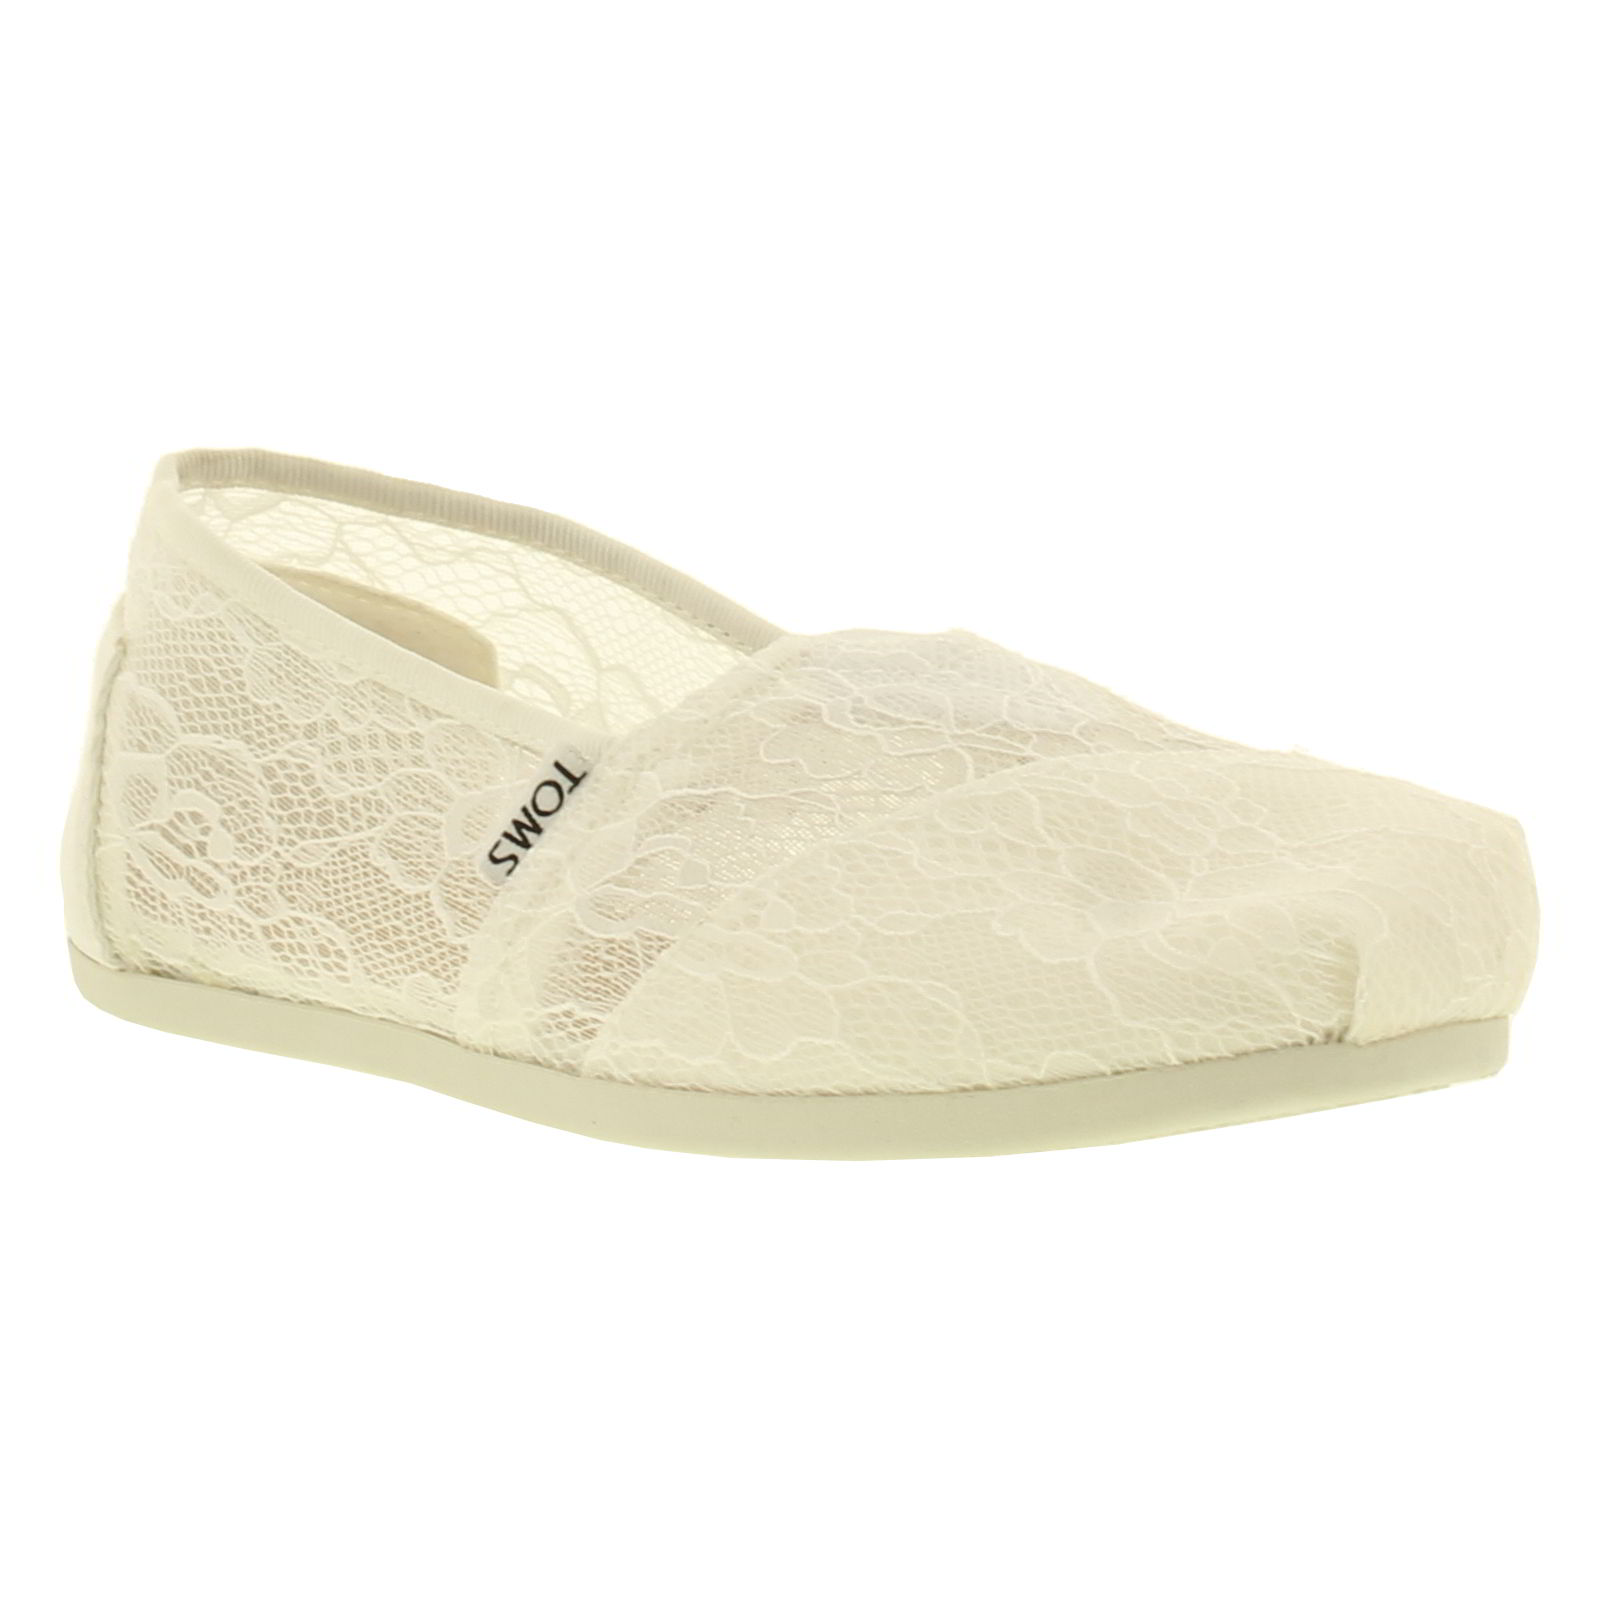 Toms Womens Classic Lace Slip On Espadrille Shoes - White Lace